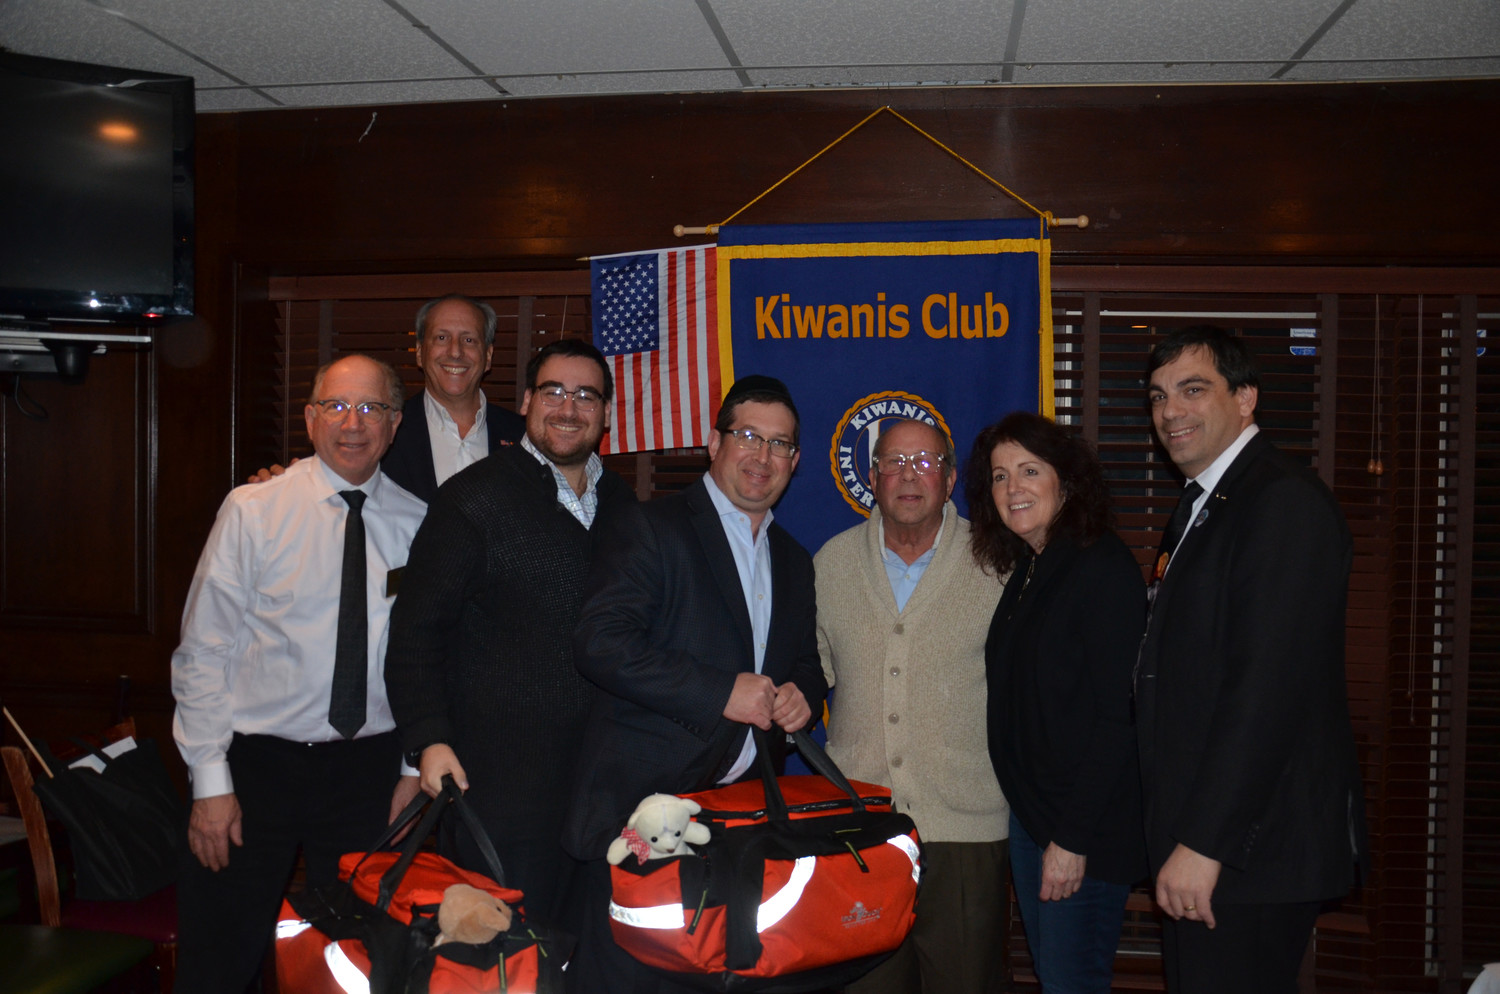 Five Towns Kiwanis  donated two pediatric trauma kits to Hatzalah. From left Dr. Fred Seltzer, Kiwanis President Tom Cohen, Scott Orlanski, Meir Krengel, Barry and Marcia Ringelheim, and Kiwanis Lt. Gov. Tom Cessiro III.